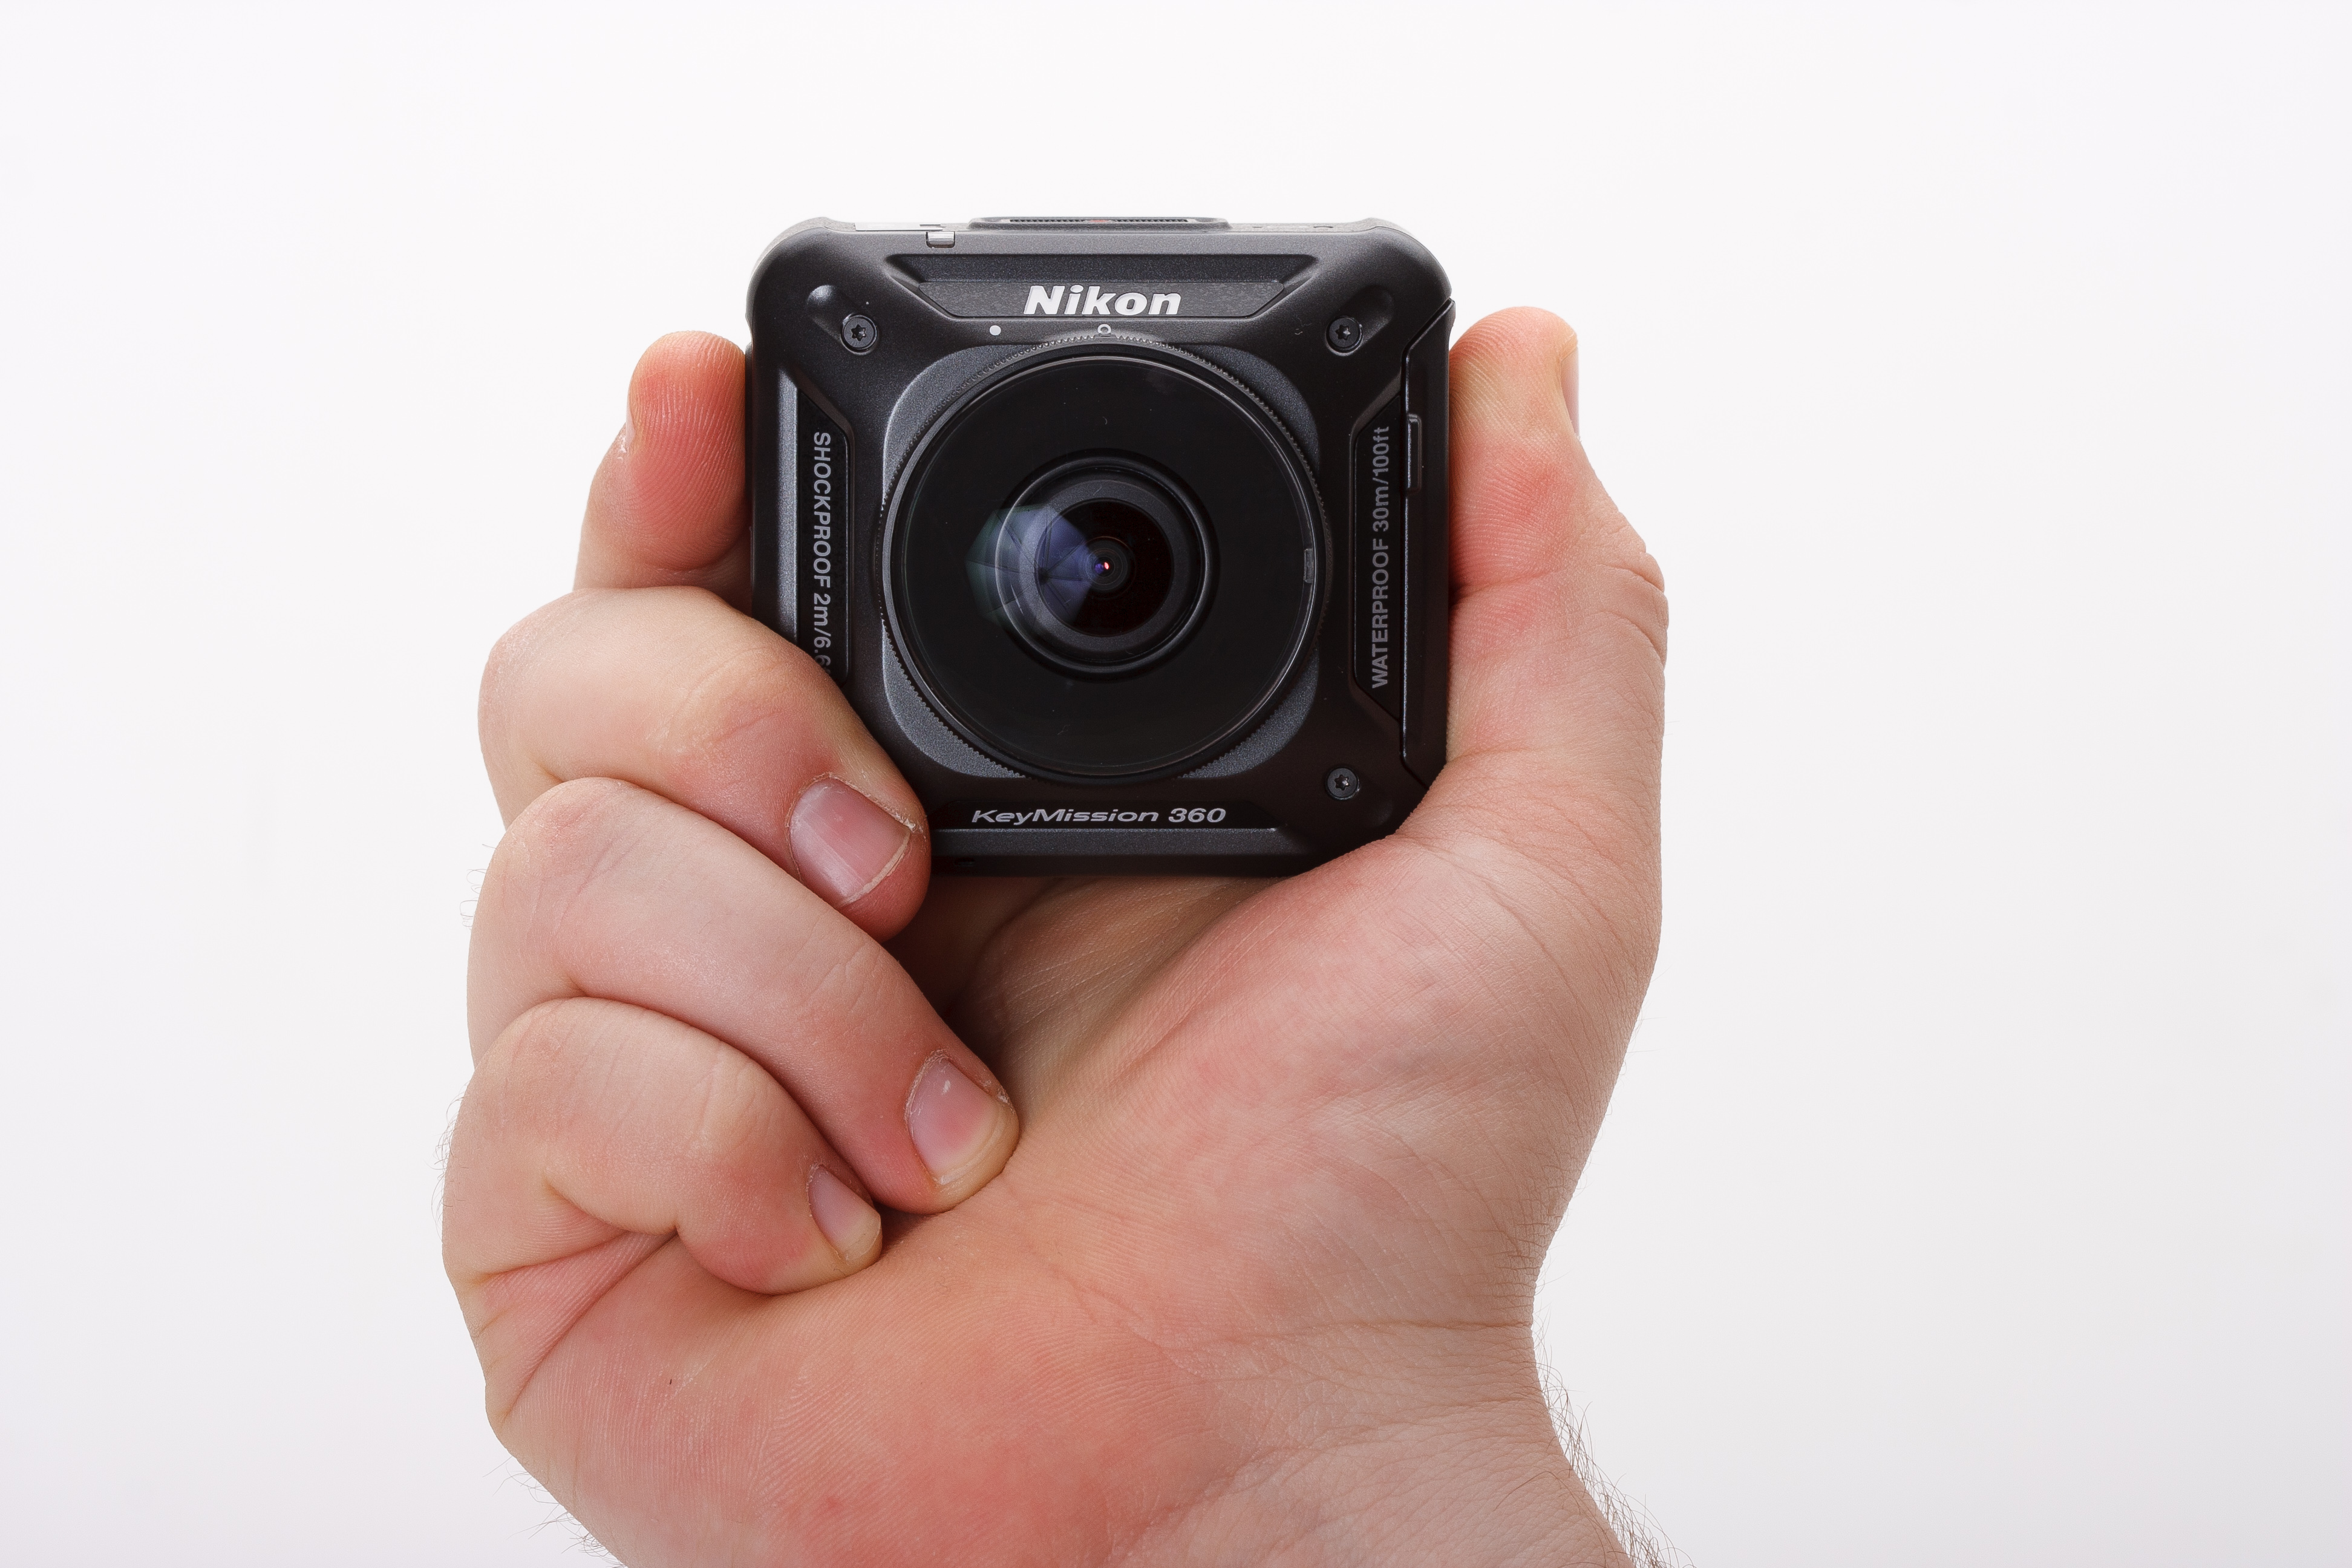 Sphere Of Frustration Nikon Keymission 360 Review Digital Camera Sportcam Non Wifi Action Cam Gopro When We Talk About How A Handles Usually Mean It Feels In The Hand Much Weighs And Comfortable Is To Shoot Using Viewfinder